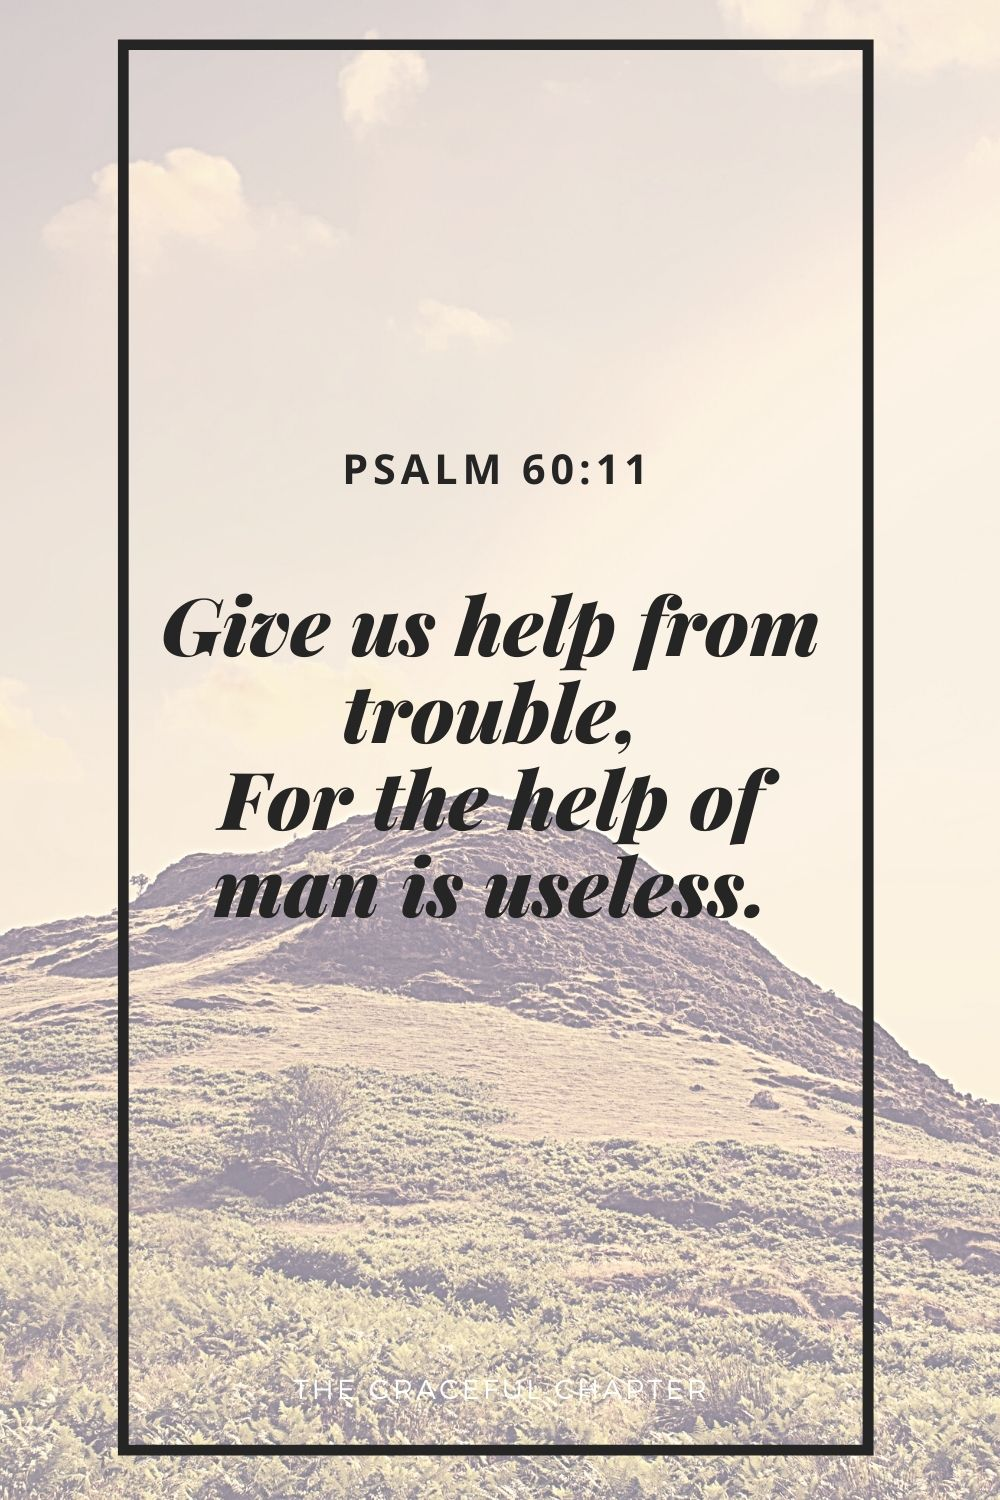 Give us help from trouble, For the help of man is useless. Psalm 60:11